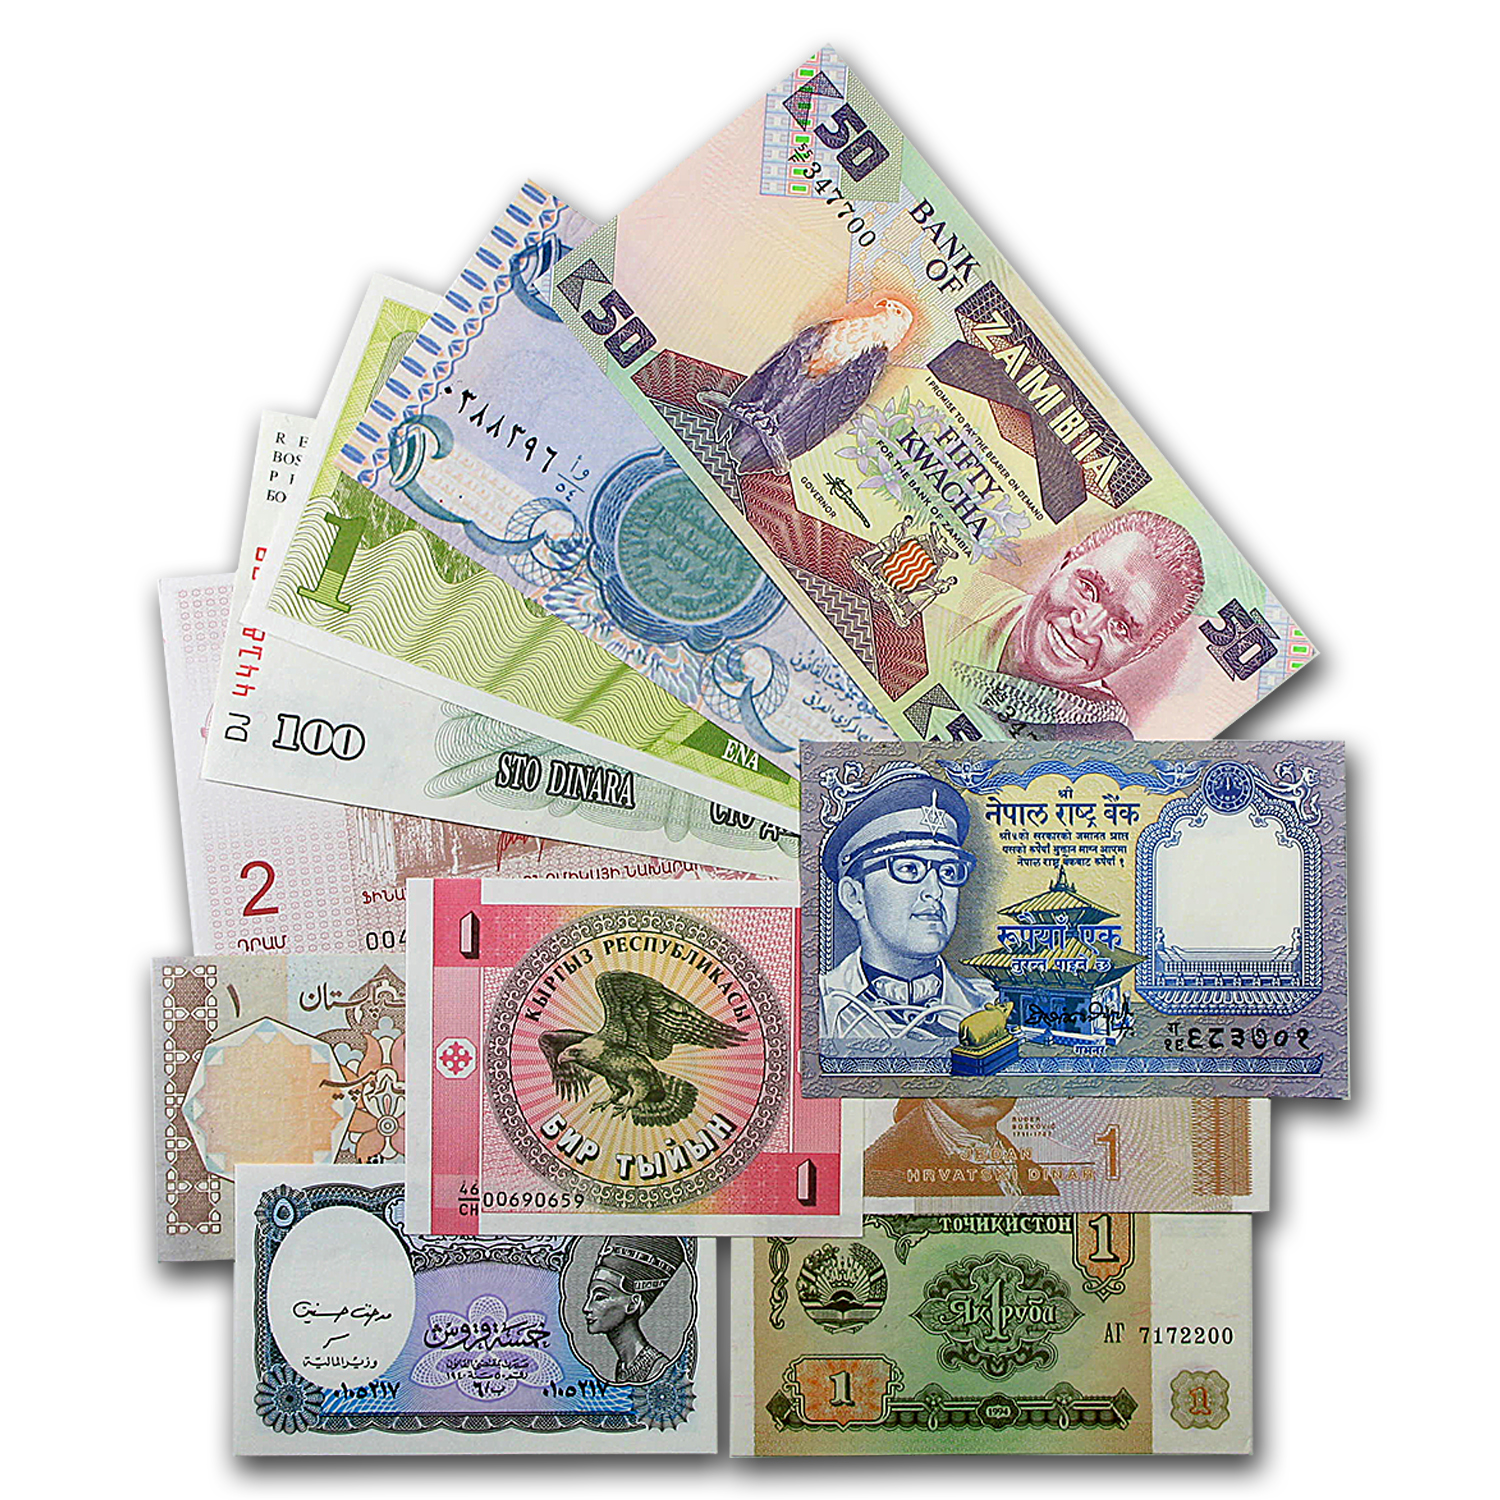 25 Piece World Bank Note Assortment - Uncirculated